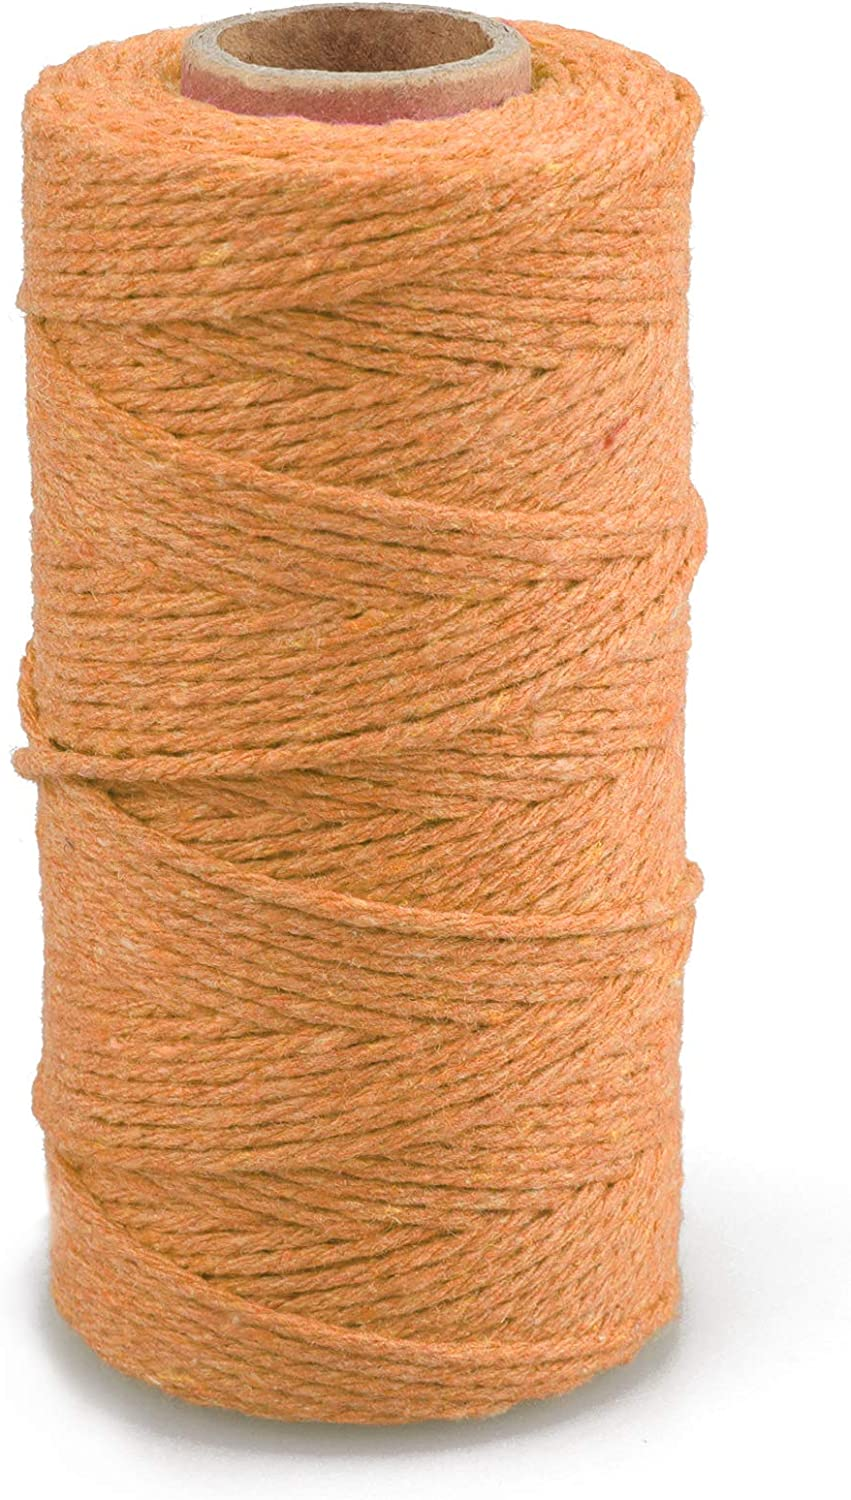 jijAcraft 2MM Cotton String 100M Yellow String for Crafts Gift Wrapping Packing